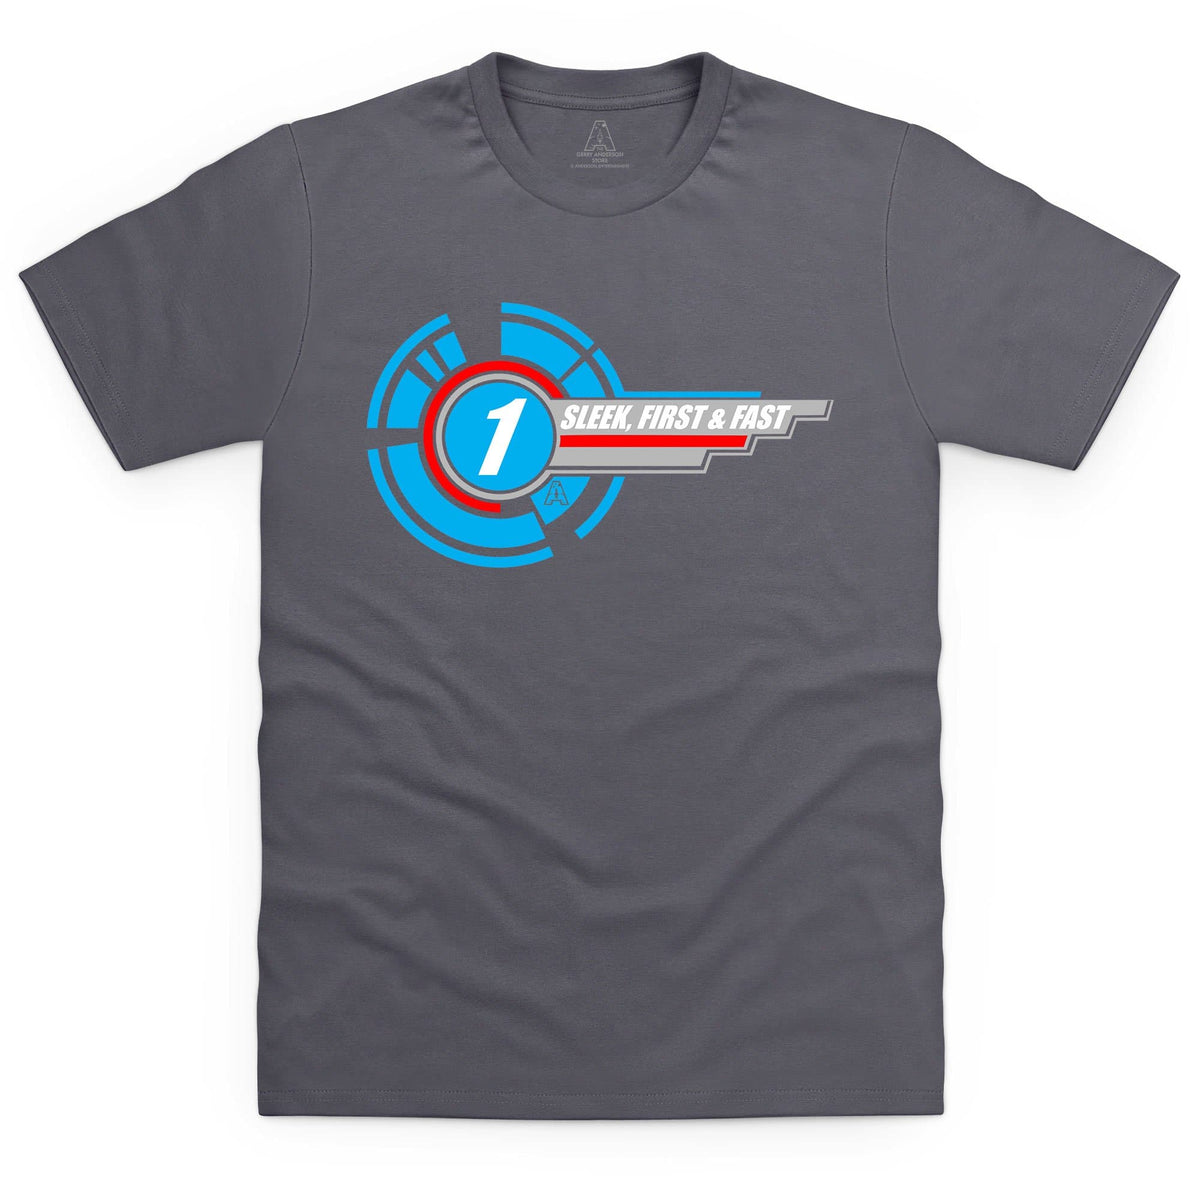 Thunderbird 1 Inspired Men's T-Shirt - The Gerry Anderson Store